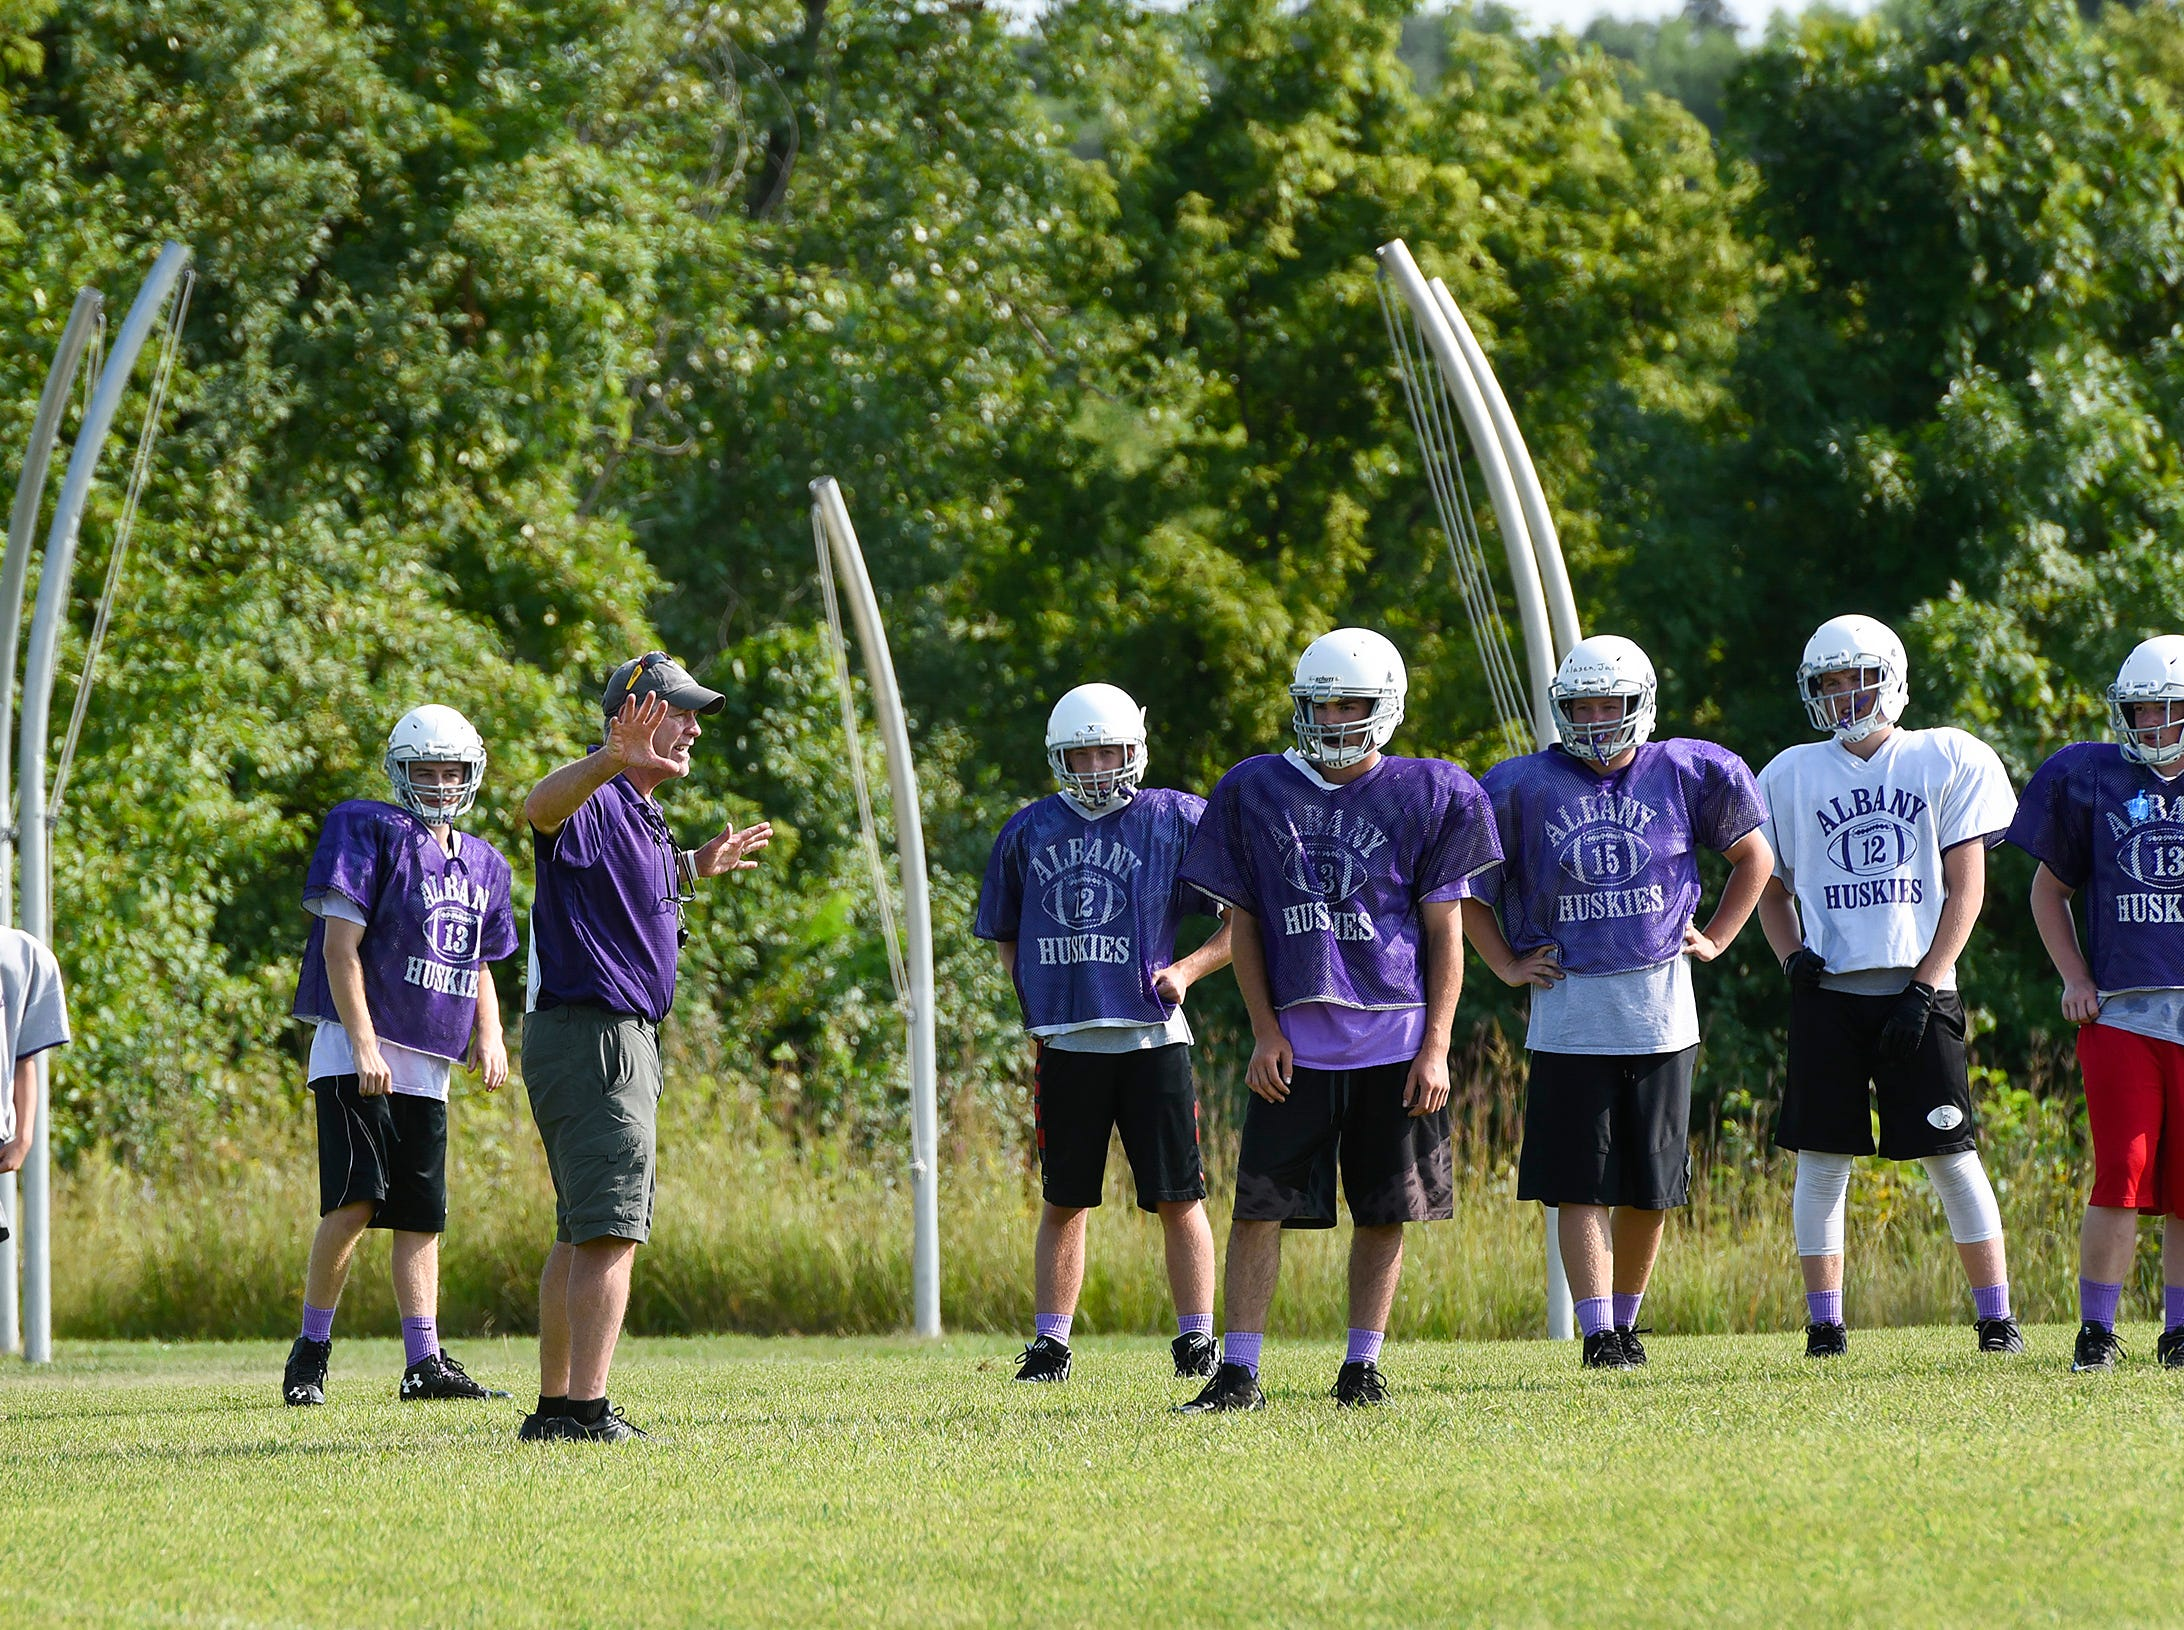 Albany coach Mike Kleinschmidt works with players during practice Wednesday, Aug. 15, at the Albany High School.